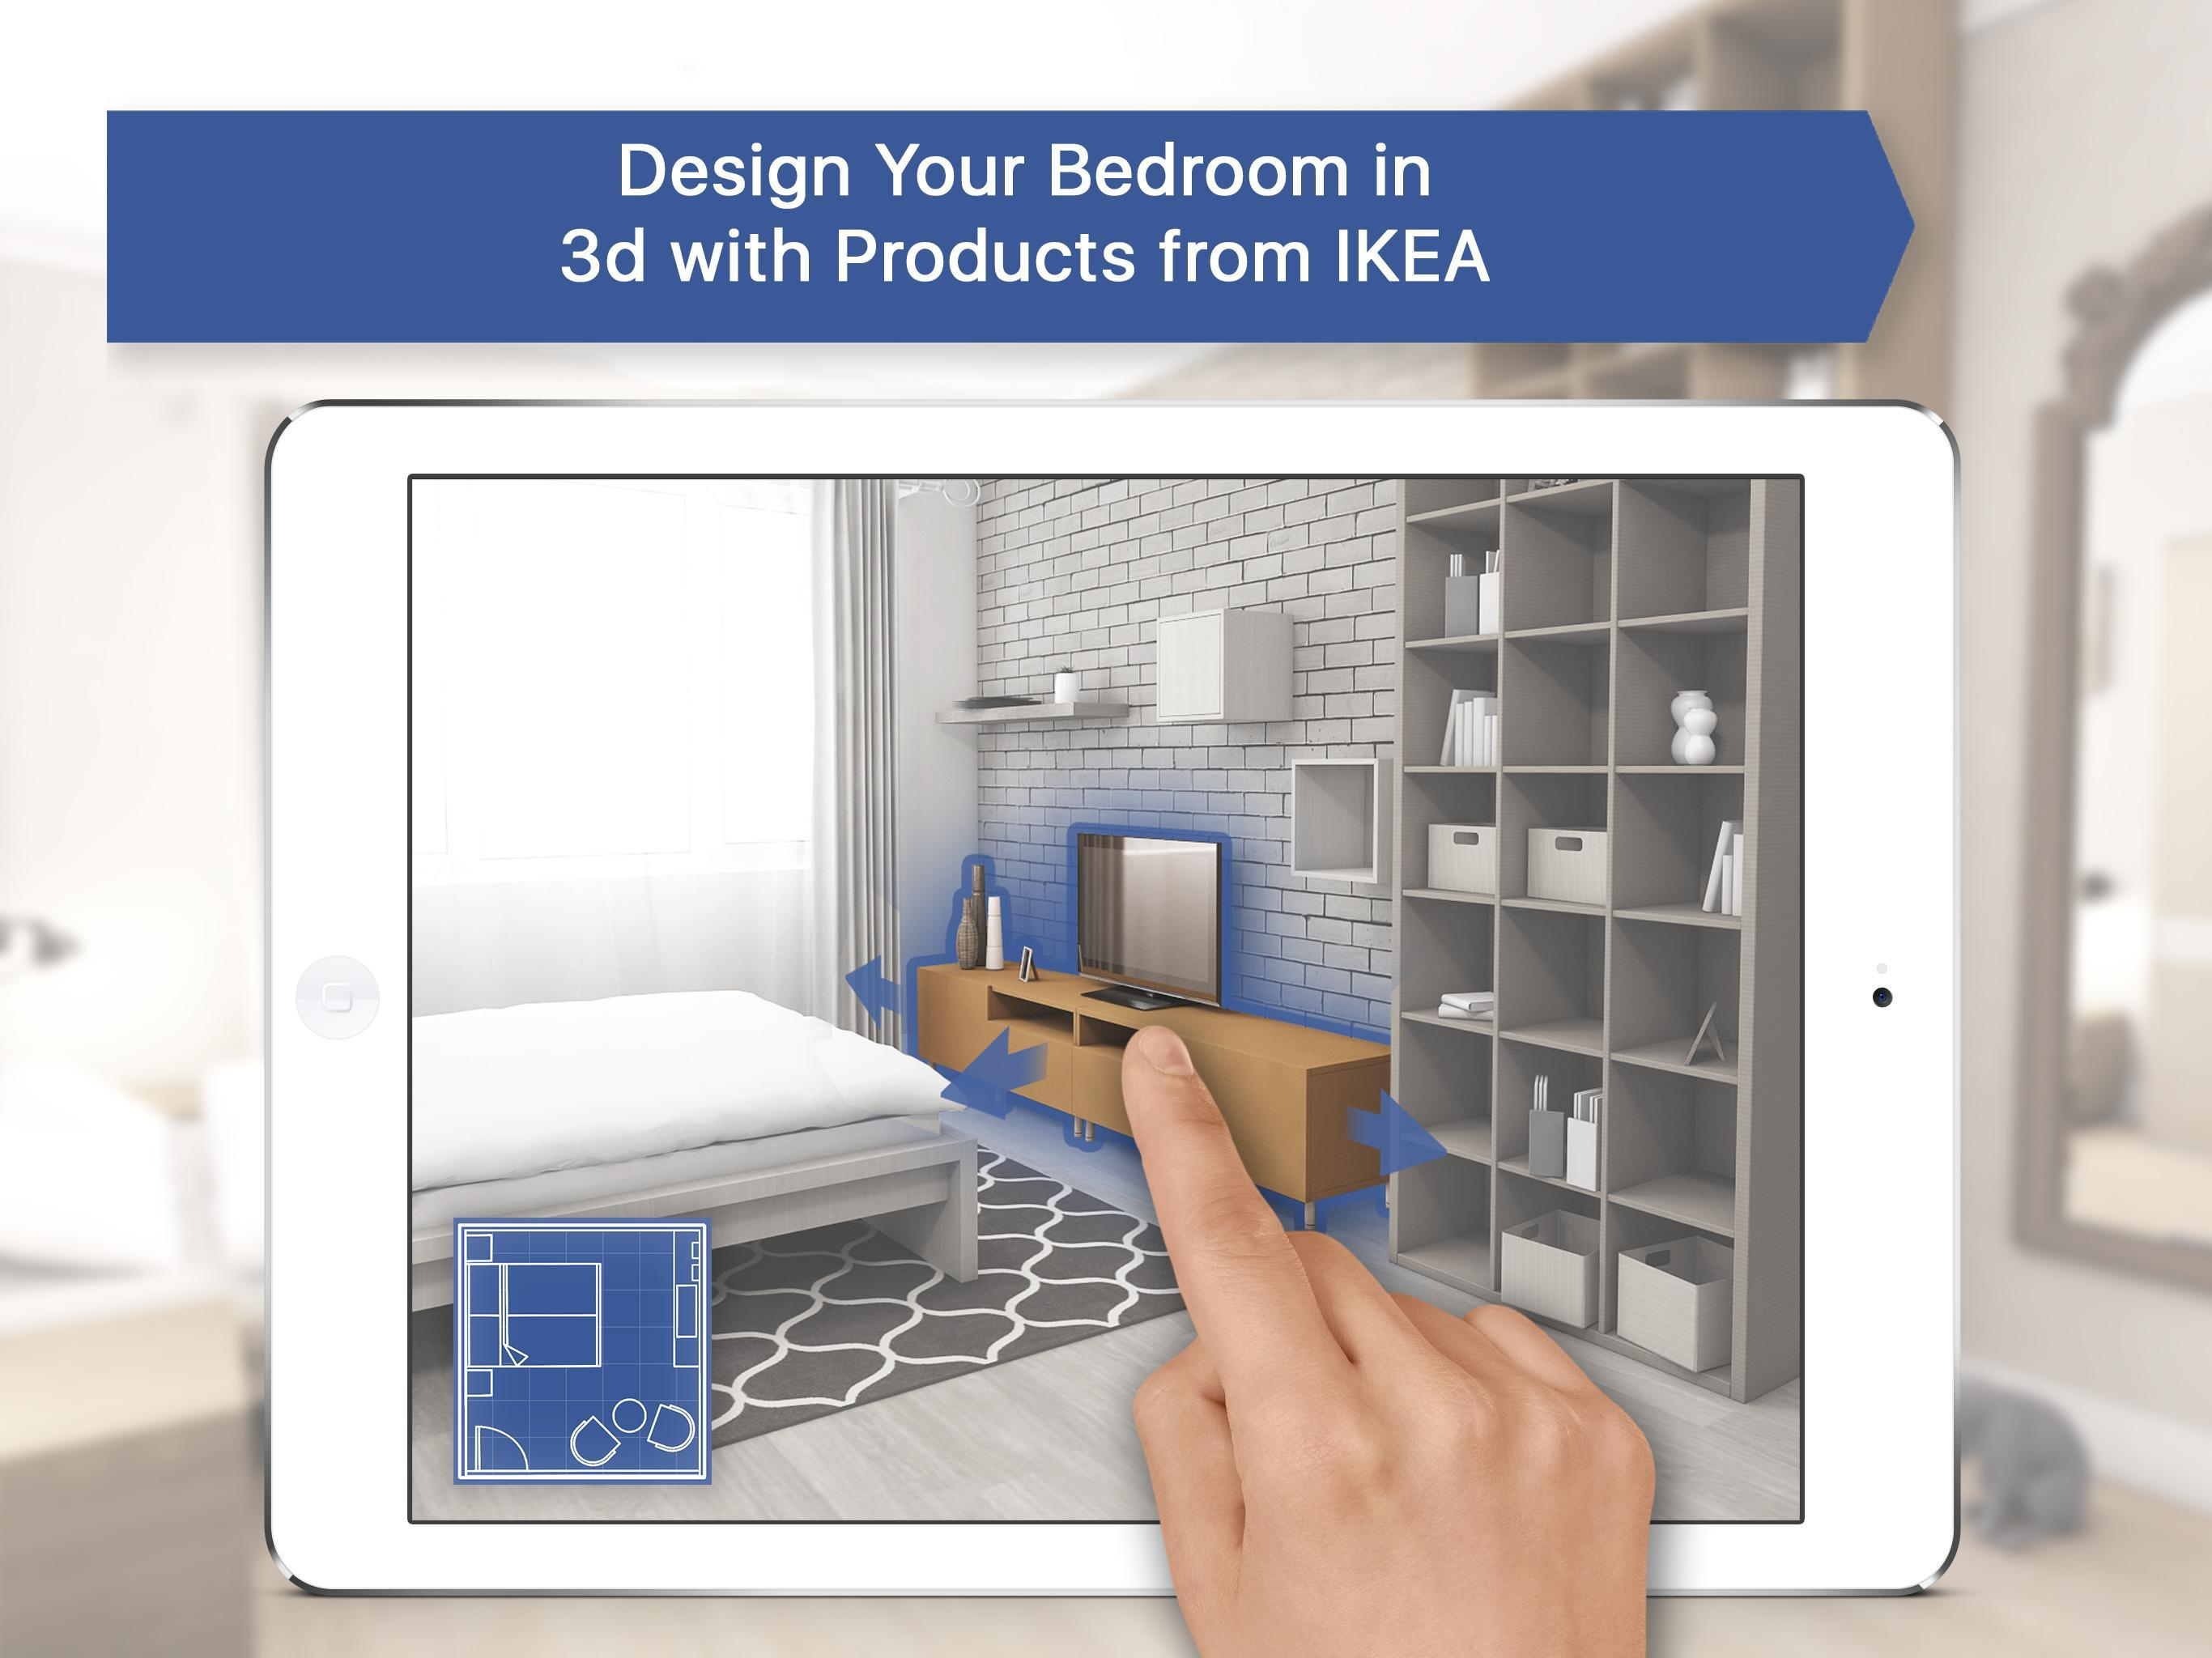 4D Bedroom for IKEA: Room Interior Design Planner for Android